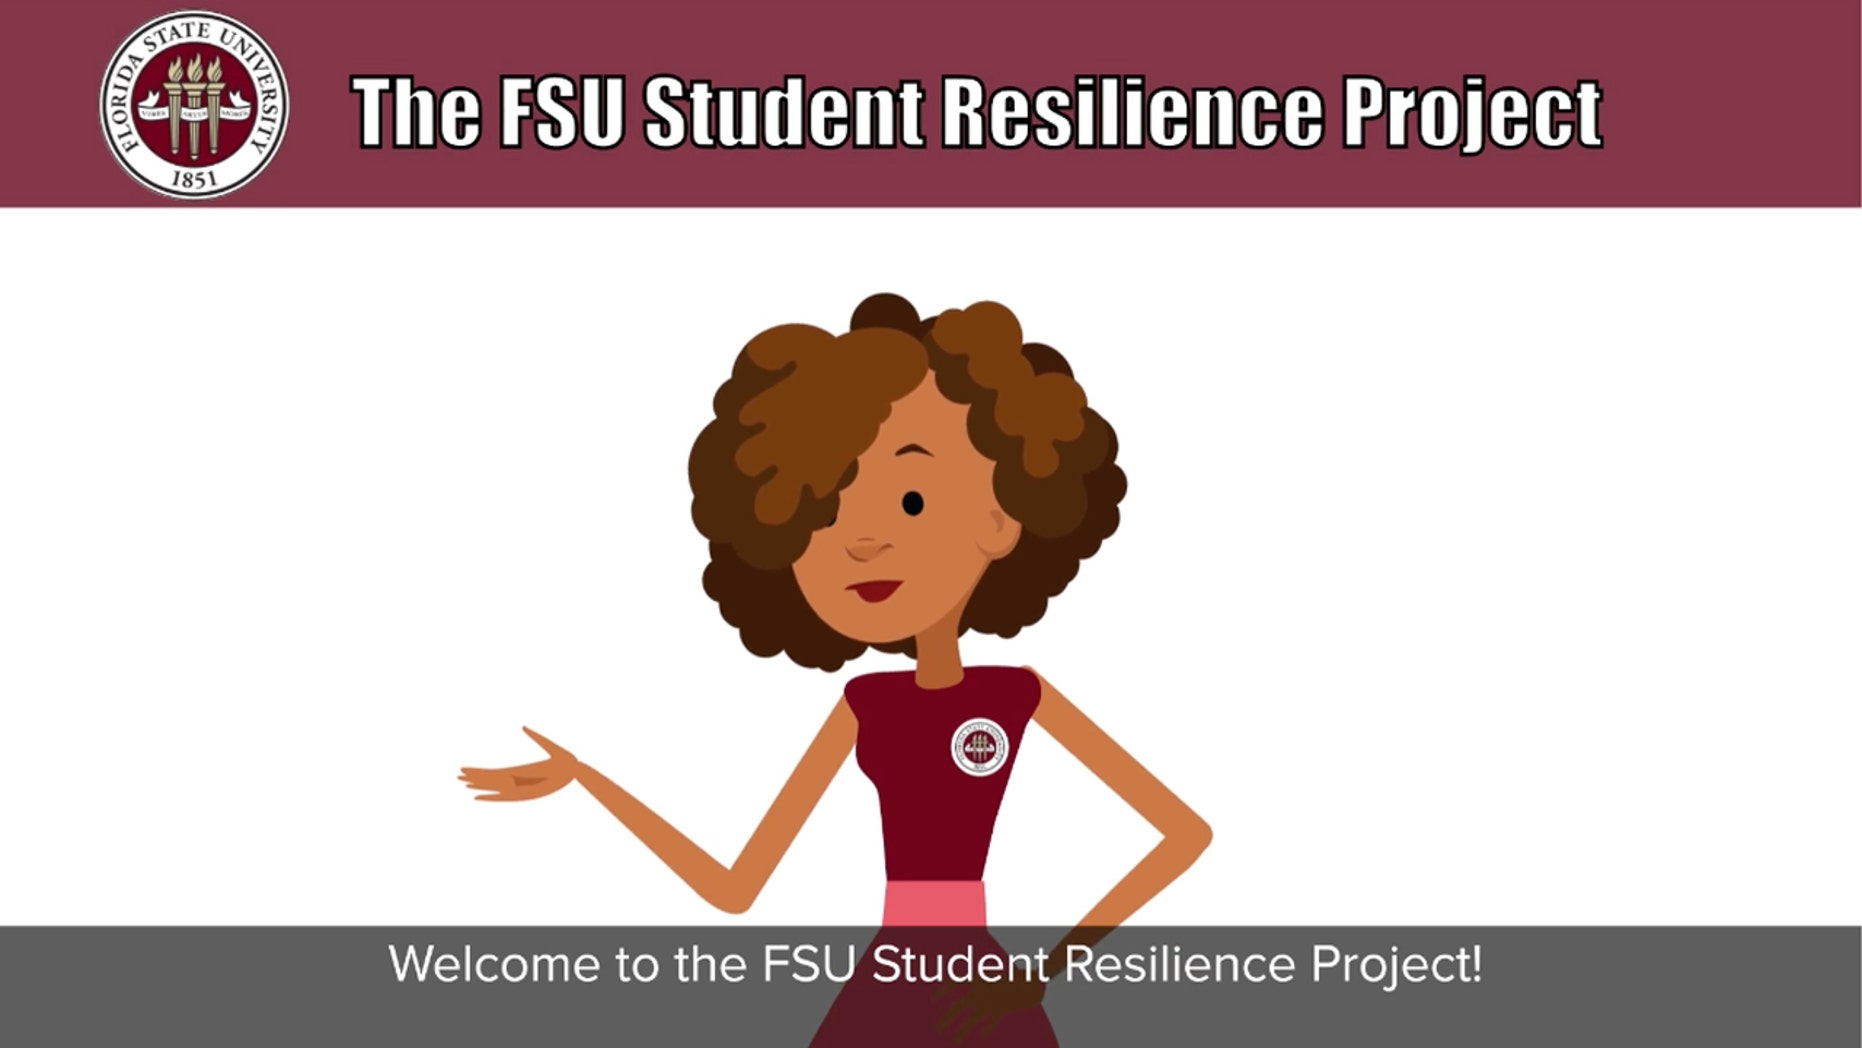 Florida State University's Student Resilience Project is designed to help incoming freshmen deal with college stress, but some students can opt out.